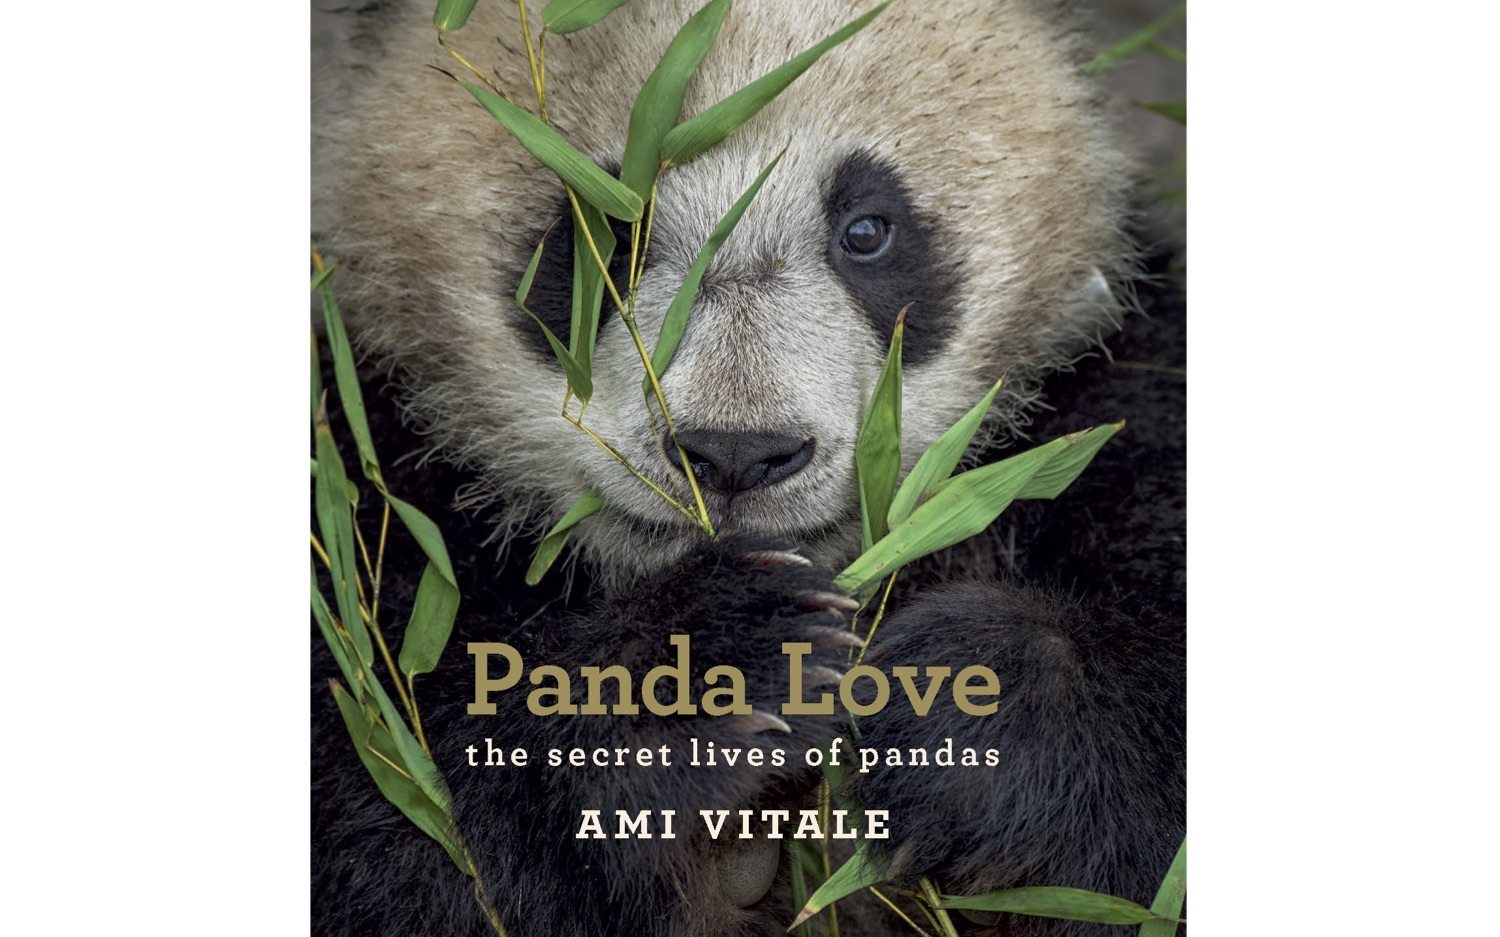 cover of the book Panda Love by Ami Vitale